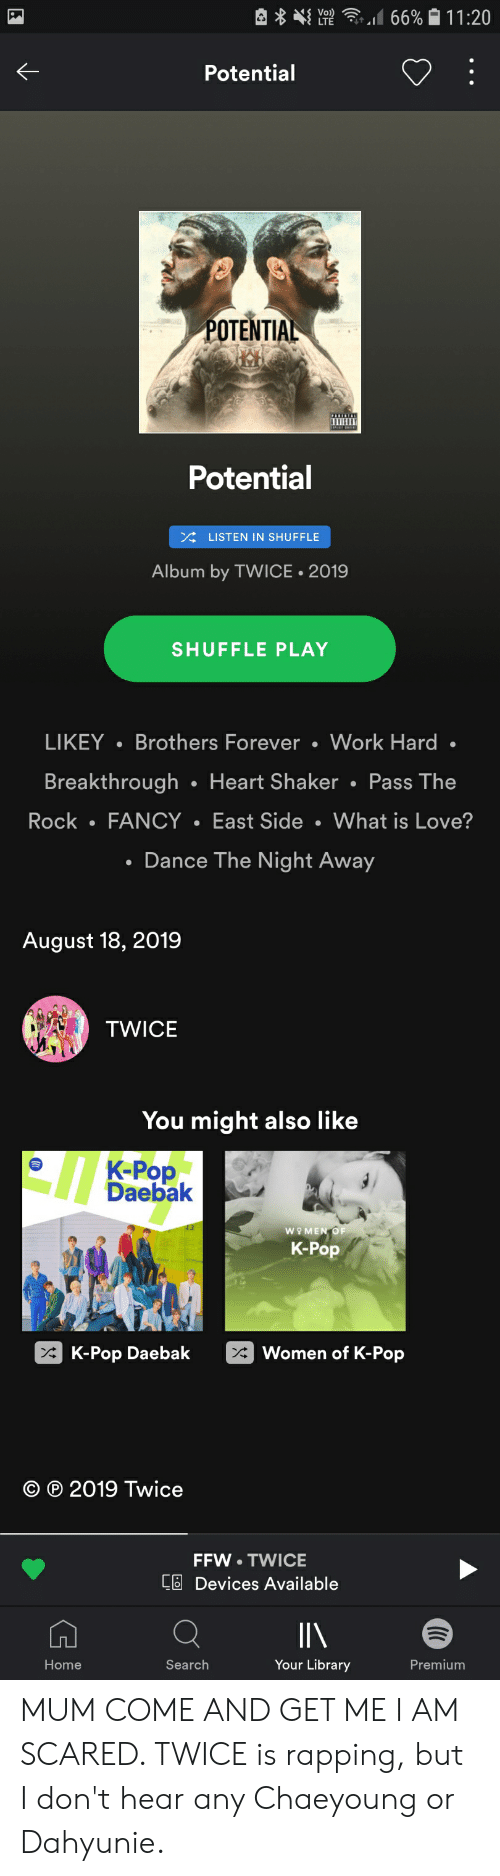 K Pop K Pop: 66% 11:20  Vo)  LTE  Potential  POTENTIAL  Potential  LISTEN IN SHUFFLE  Album by TWICE 2019  SHUFFLE PLAY  LIKEY Brothers Forever . Work Hard .  Breakthrough Heart Shaker Pass The  East Side  What is Love?  Rock  FANCY  Dance The Night Away  August 18, 2019  TWICE  You might also like  K-Pop  Daebak  WO MEN OF  K-Pop  K-Pop Daebak  Women of K-Pop  2019 Twice  FFW TWICE  C Devices Available  Your Library  Premium  Home  Search MUM COME AND GET ME I AM SCARED. TWICE is rapping, but I don't hear any Chaeyoung or Dahyunie.